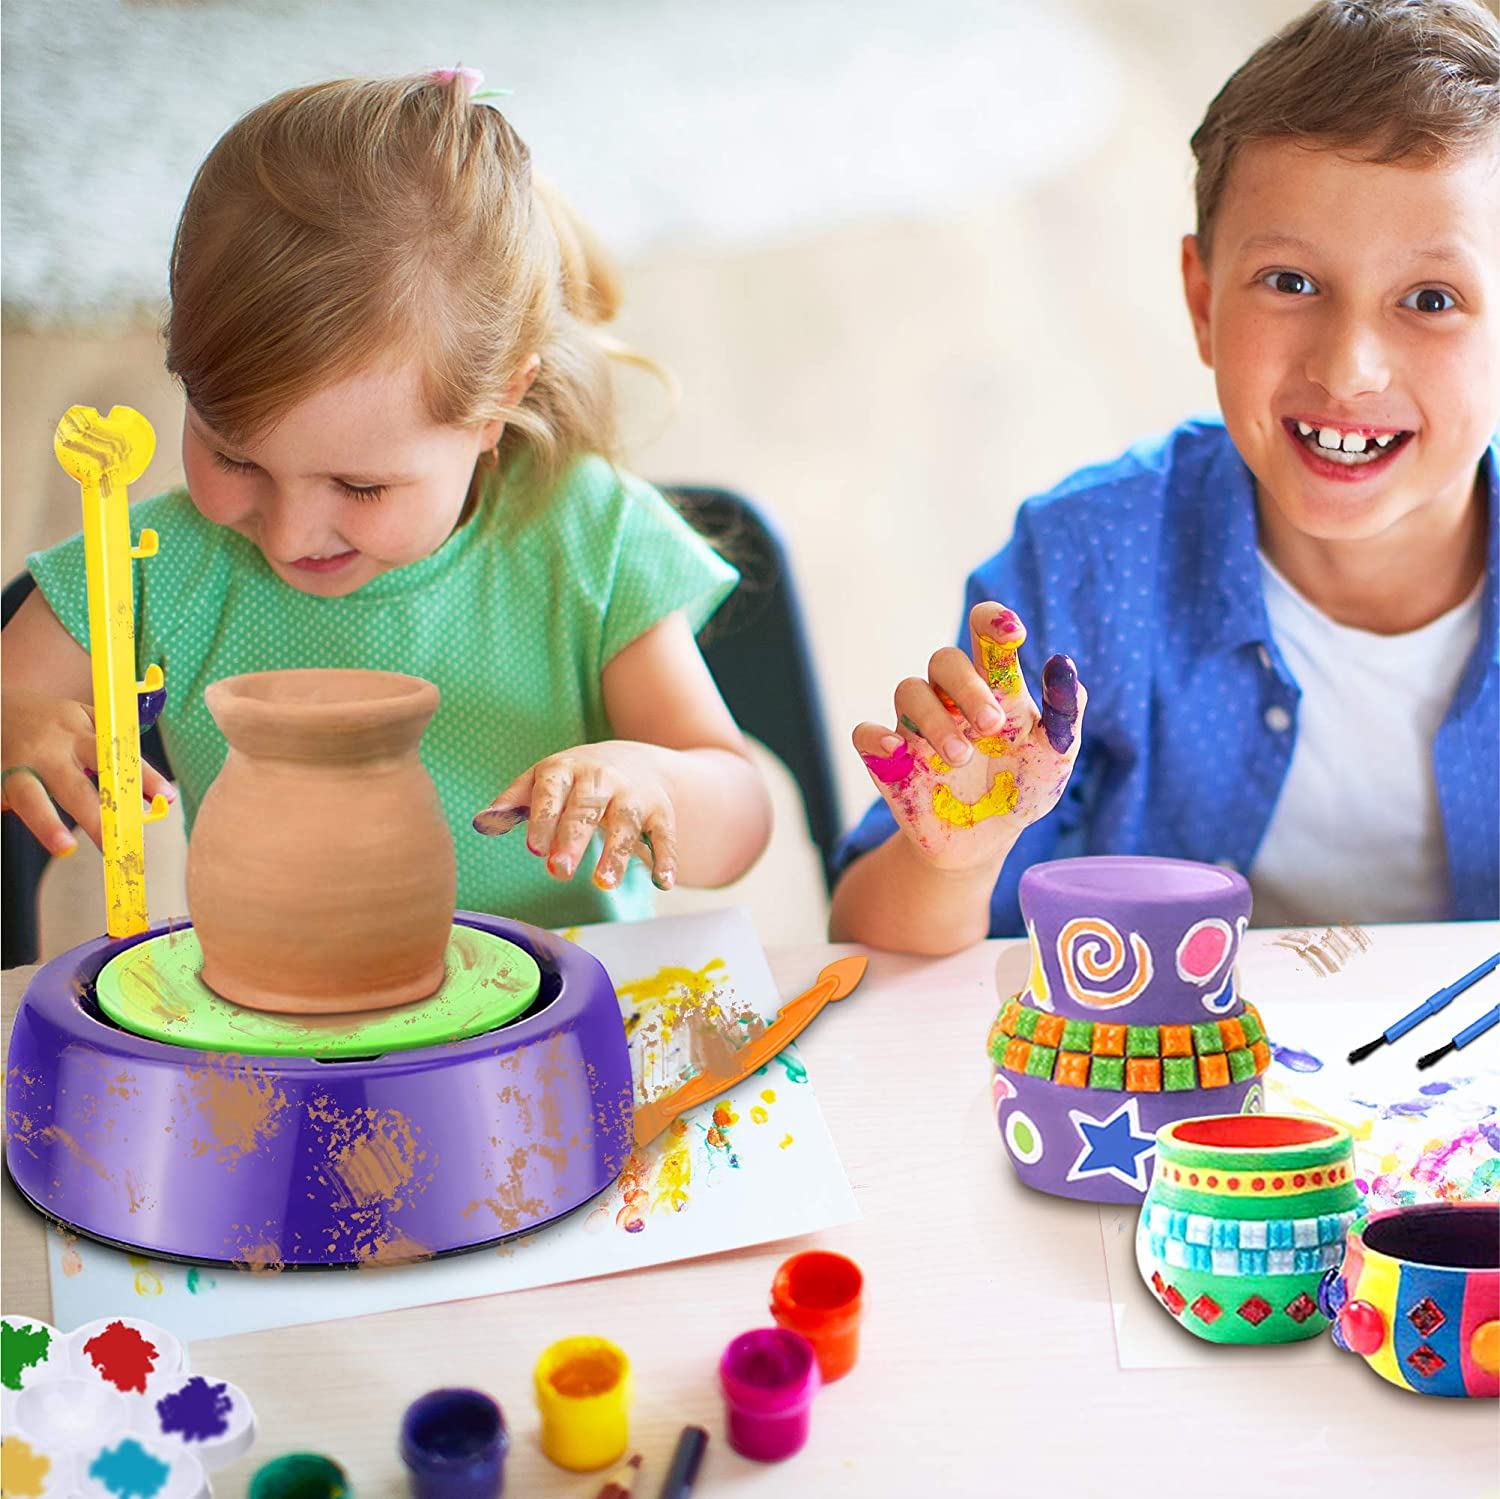 Educational Toy for Kids Beginners BuddynBuddies- Pottery Studio Clay Pottery Wheel Craft Kid for Kids Age 8 and Up Air Dry Sculpting Clay and Craft Paint kit for Kids